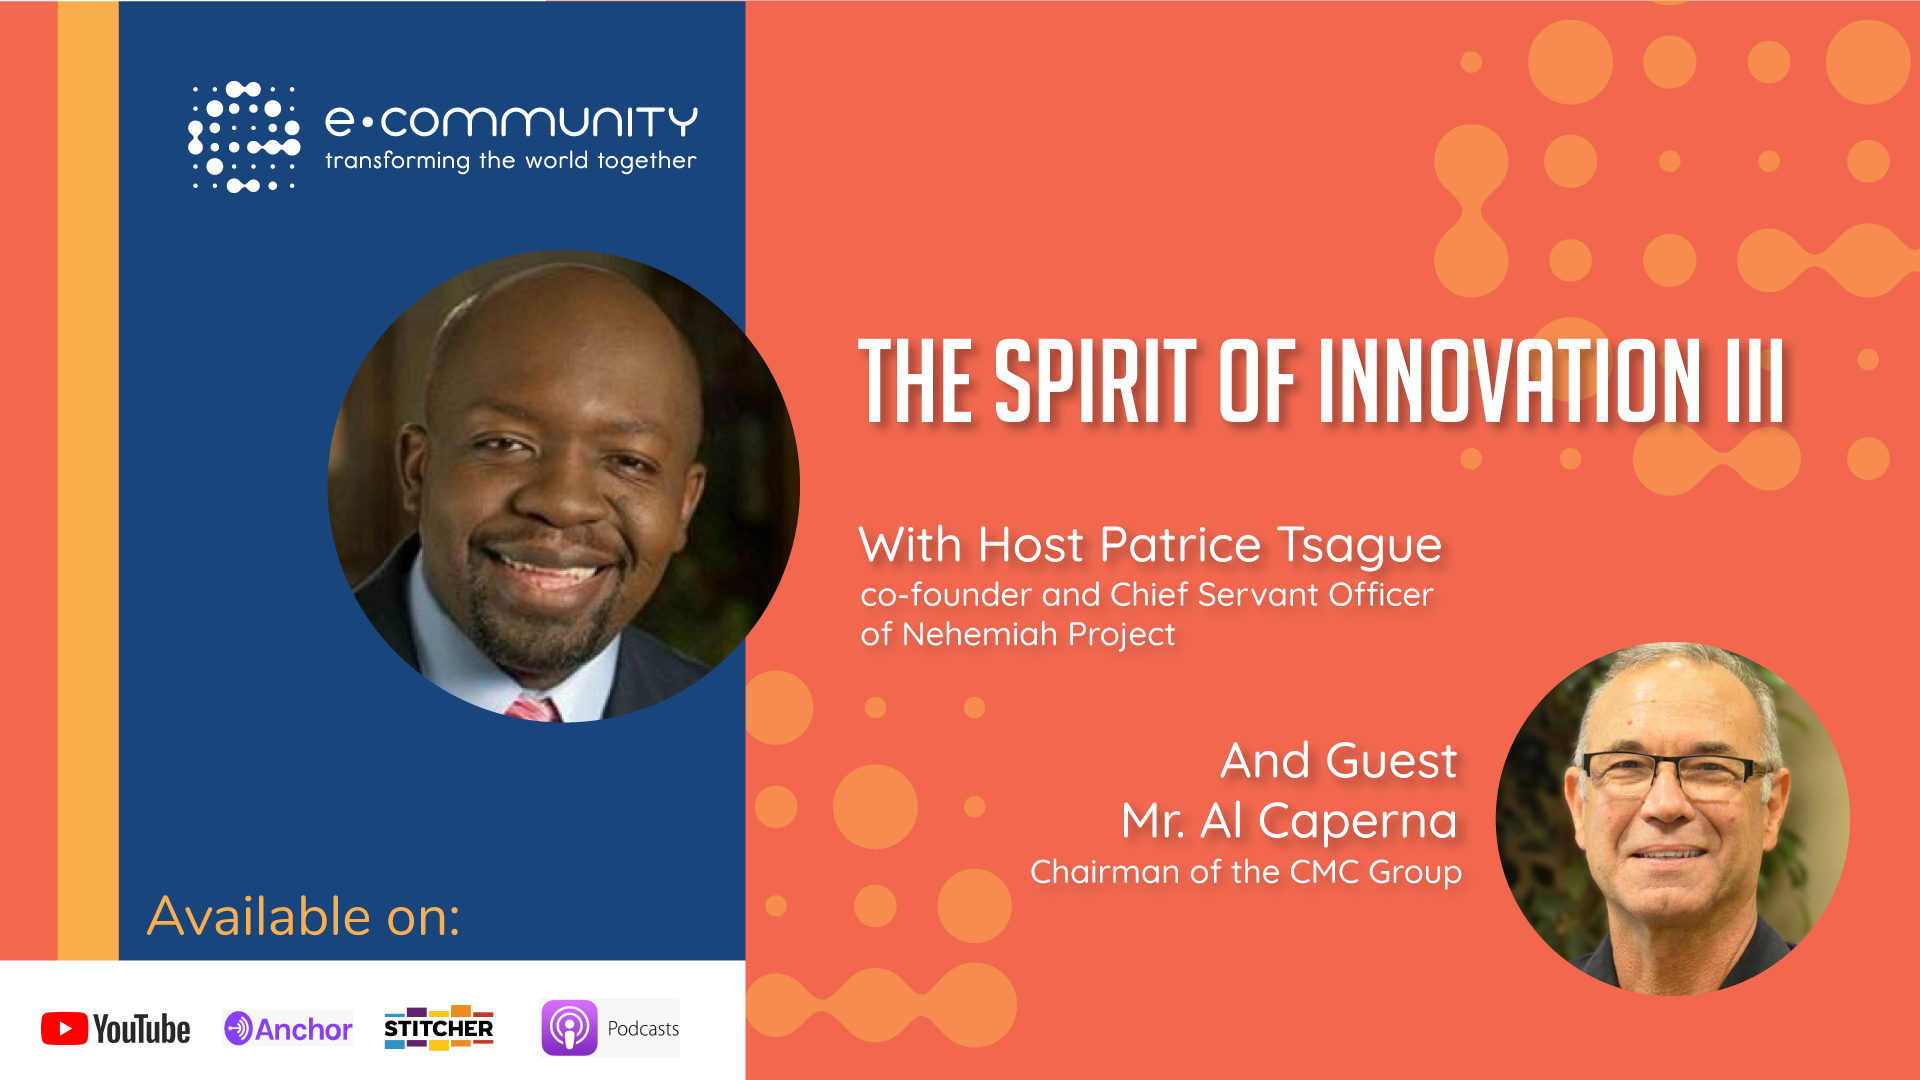 The Spirit of Innovation iIi